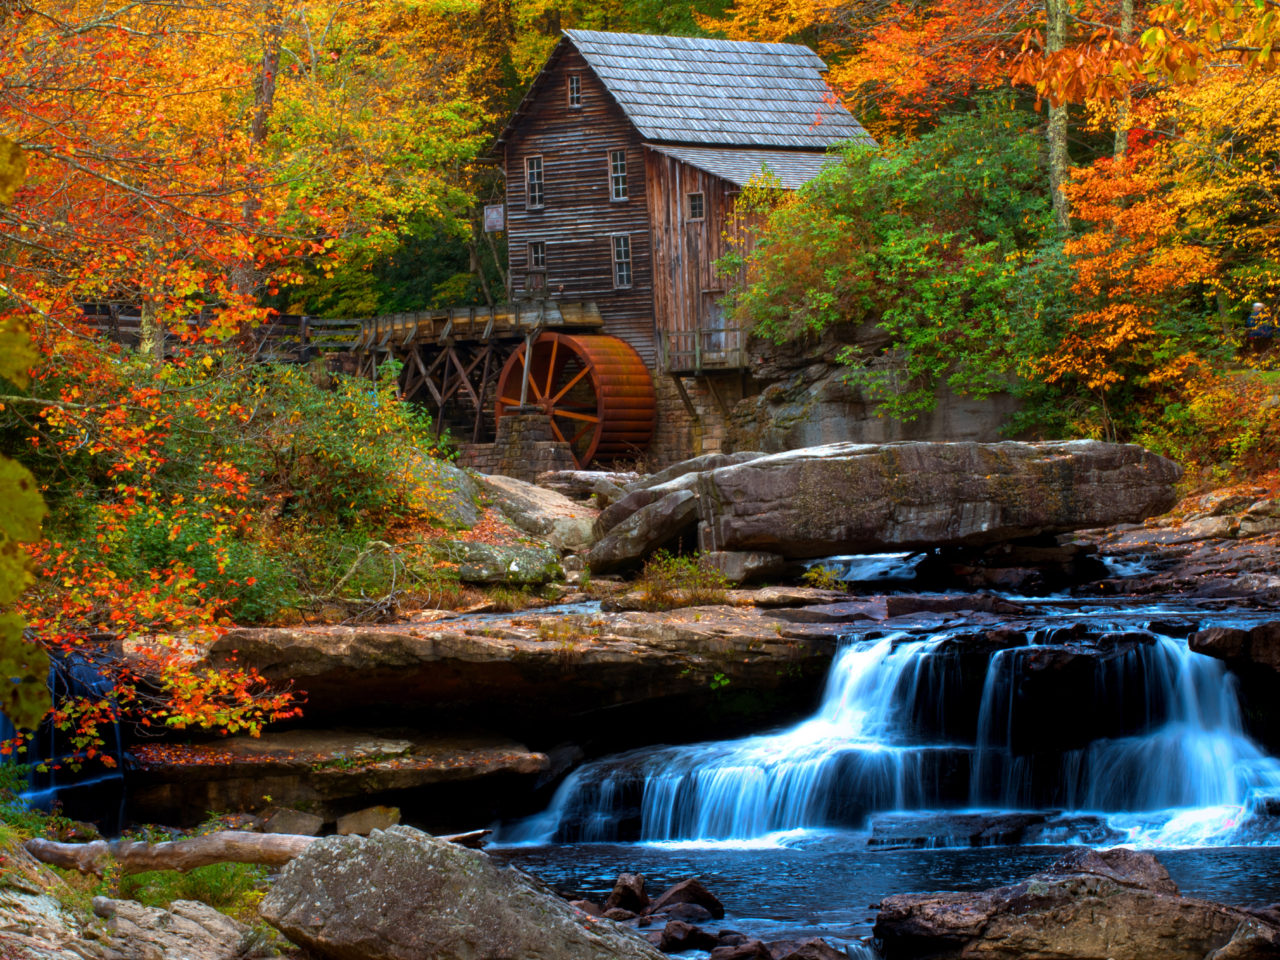 Iphone 5 Hd Wallpapers Cars Old Wooden Mill Water Flow Rock Waterfall Hd Wallpaper For